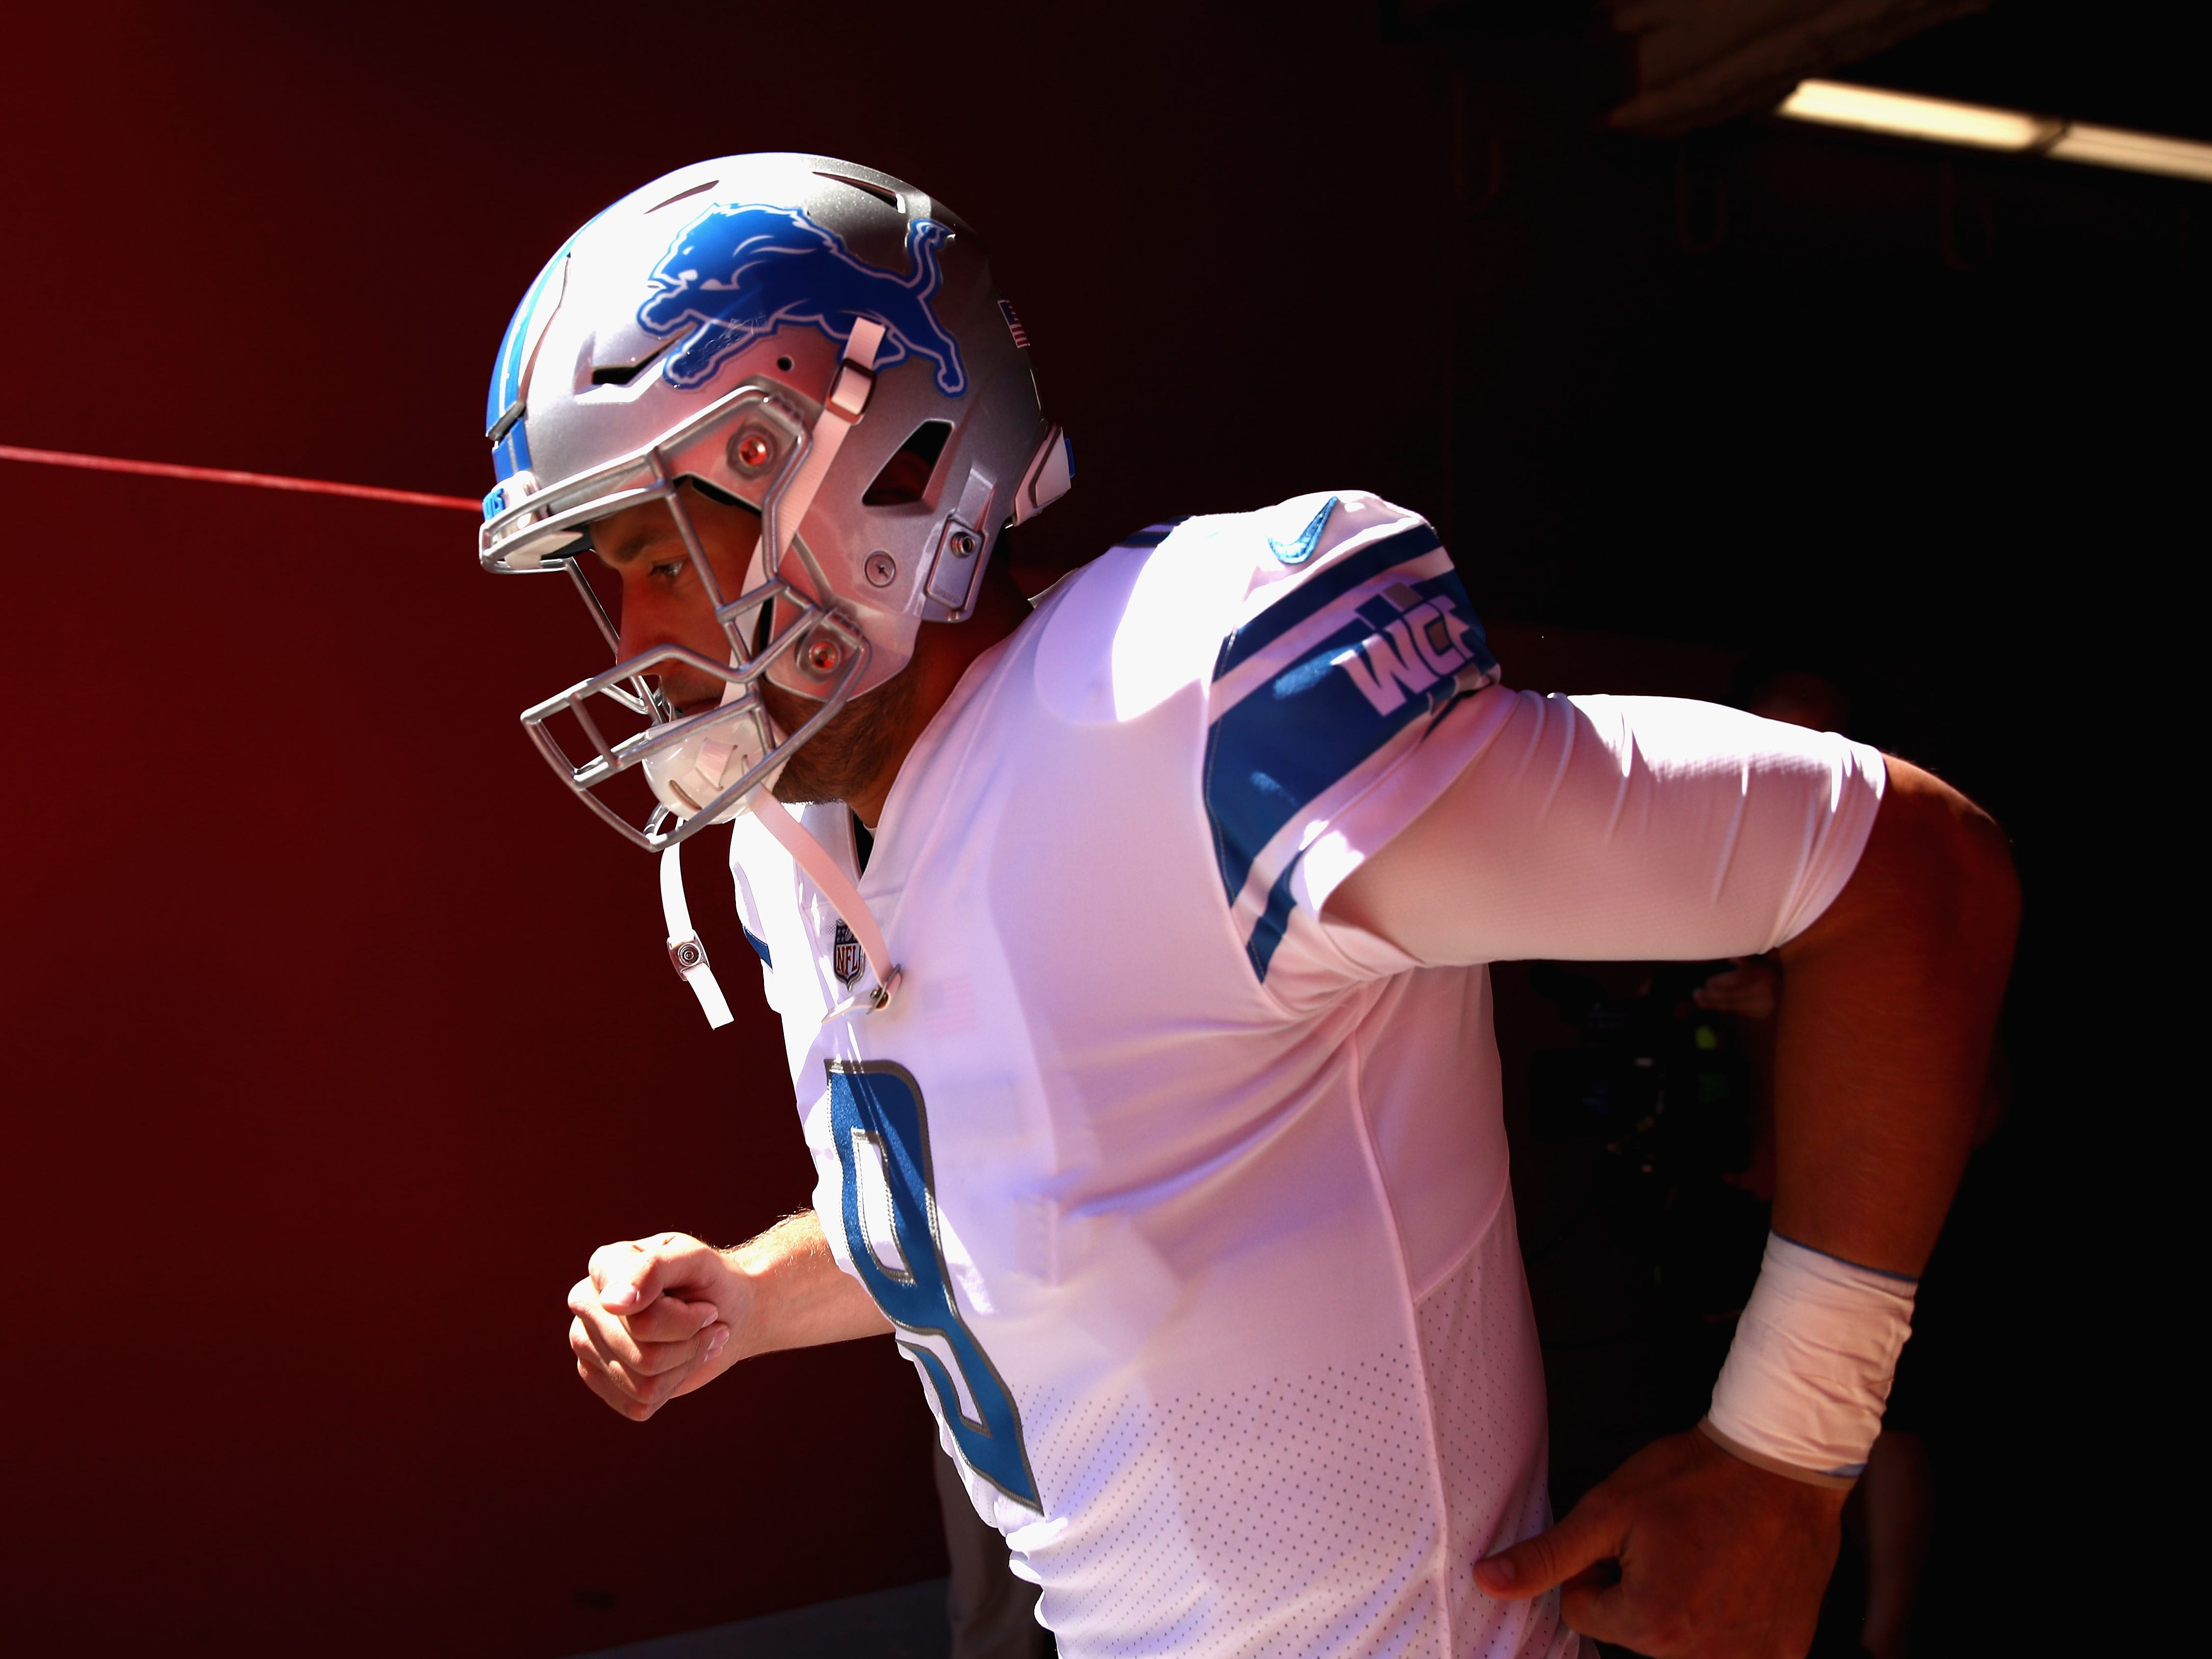 Lions quarterback Matthew Stafford runs out to the field for warm-ups before their game against the San Francisco 49ers at Levi's Stadium on Sunday, Sept. 16, 2018 in Santa Clara, Calif.